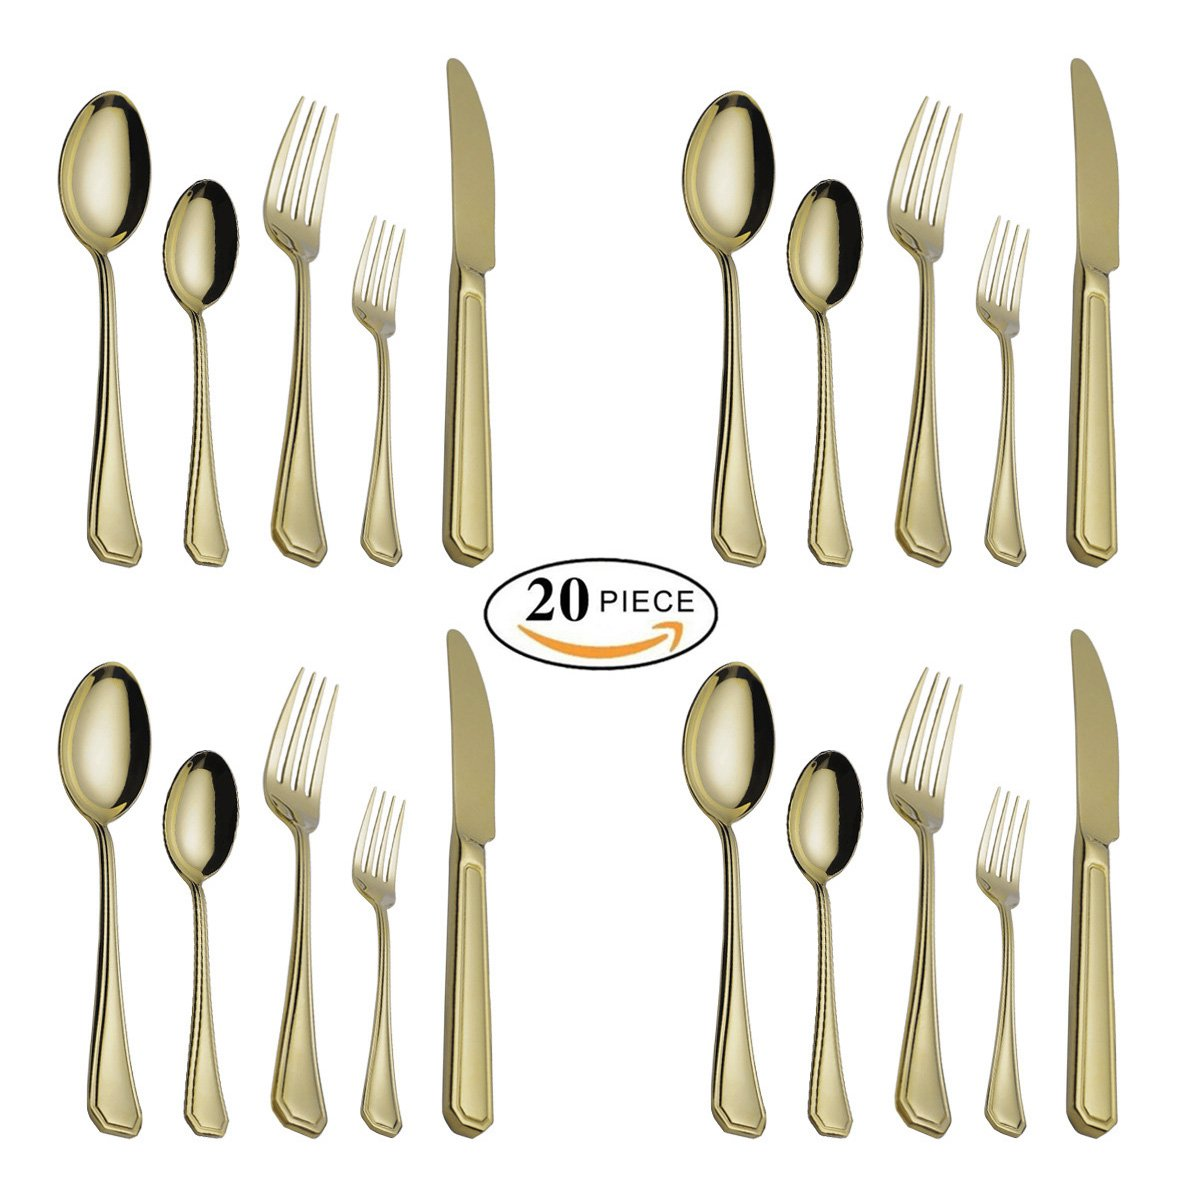 (Gold 4 Sets 20pcs) - 20-Piece Flatware Silverware Set Service for 4 People Stainless Steel Cutlery Include Dinner Knife Fork Spoon Dishwasher Safe (Mirror Finish Gold) B075624XQV Gold 4 Sets 20pcs Gold 4 Sets 20pcs